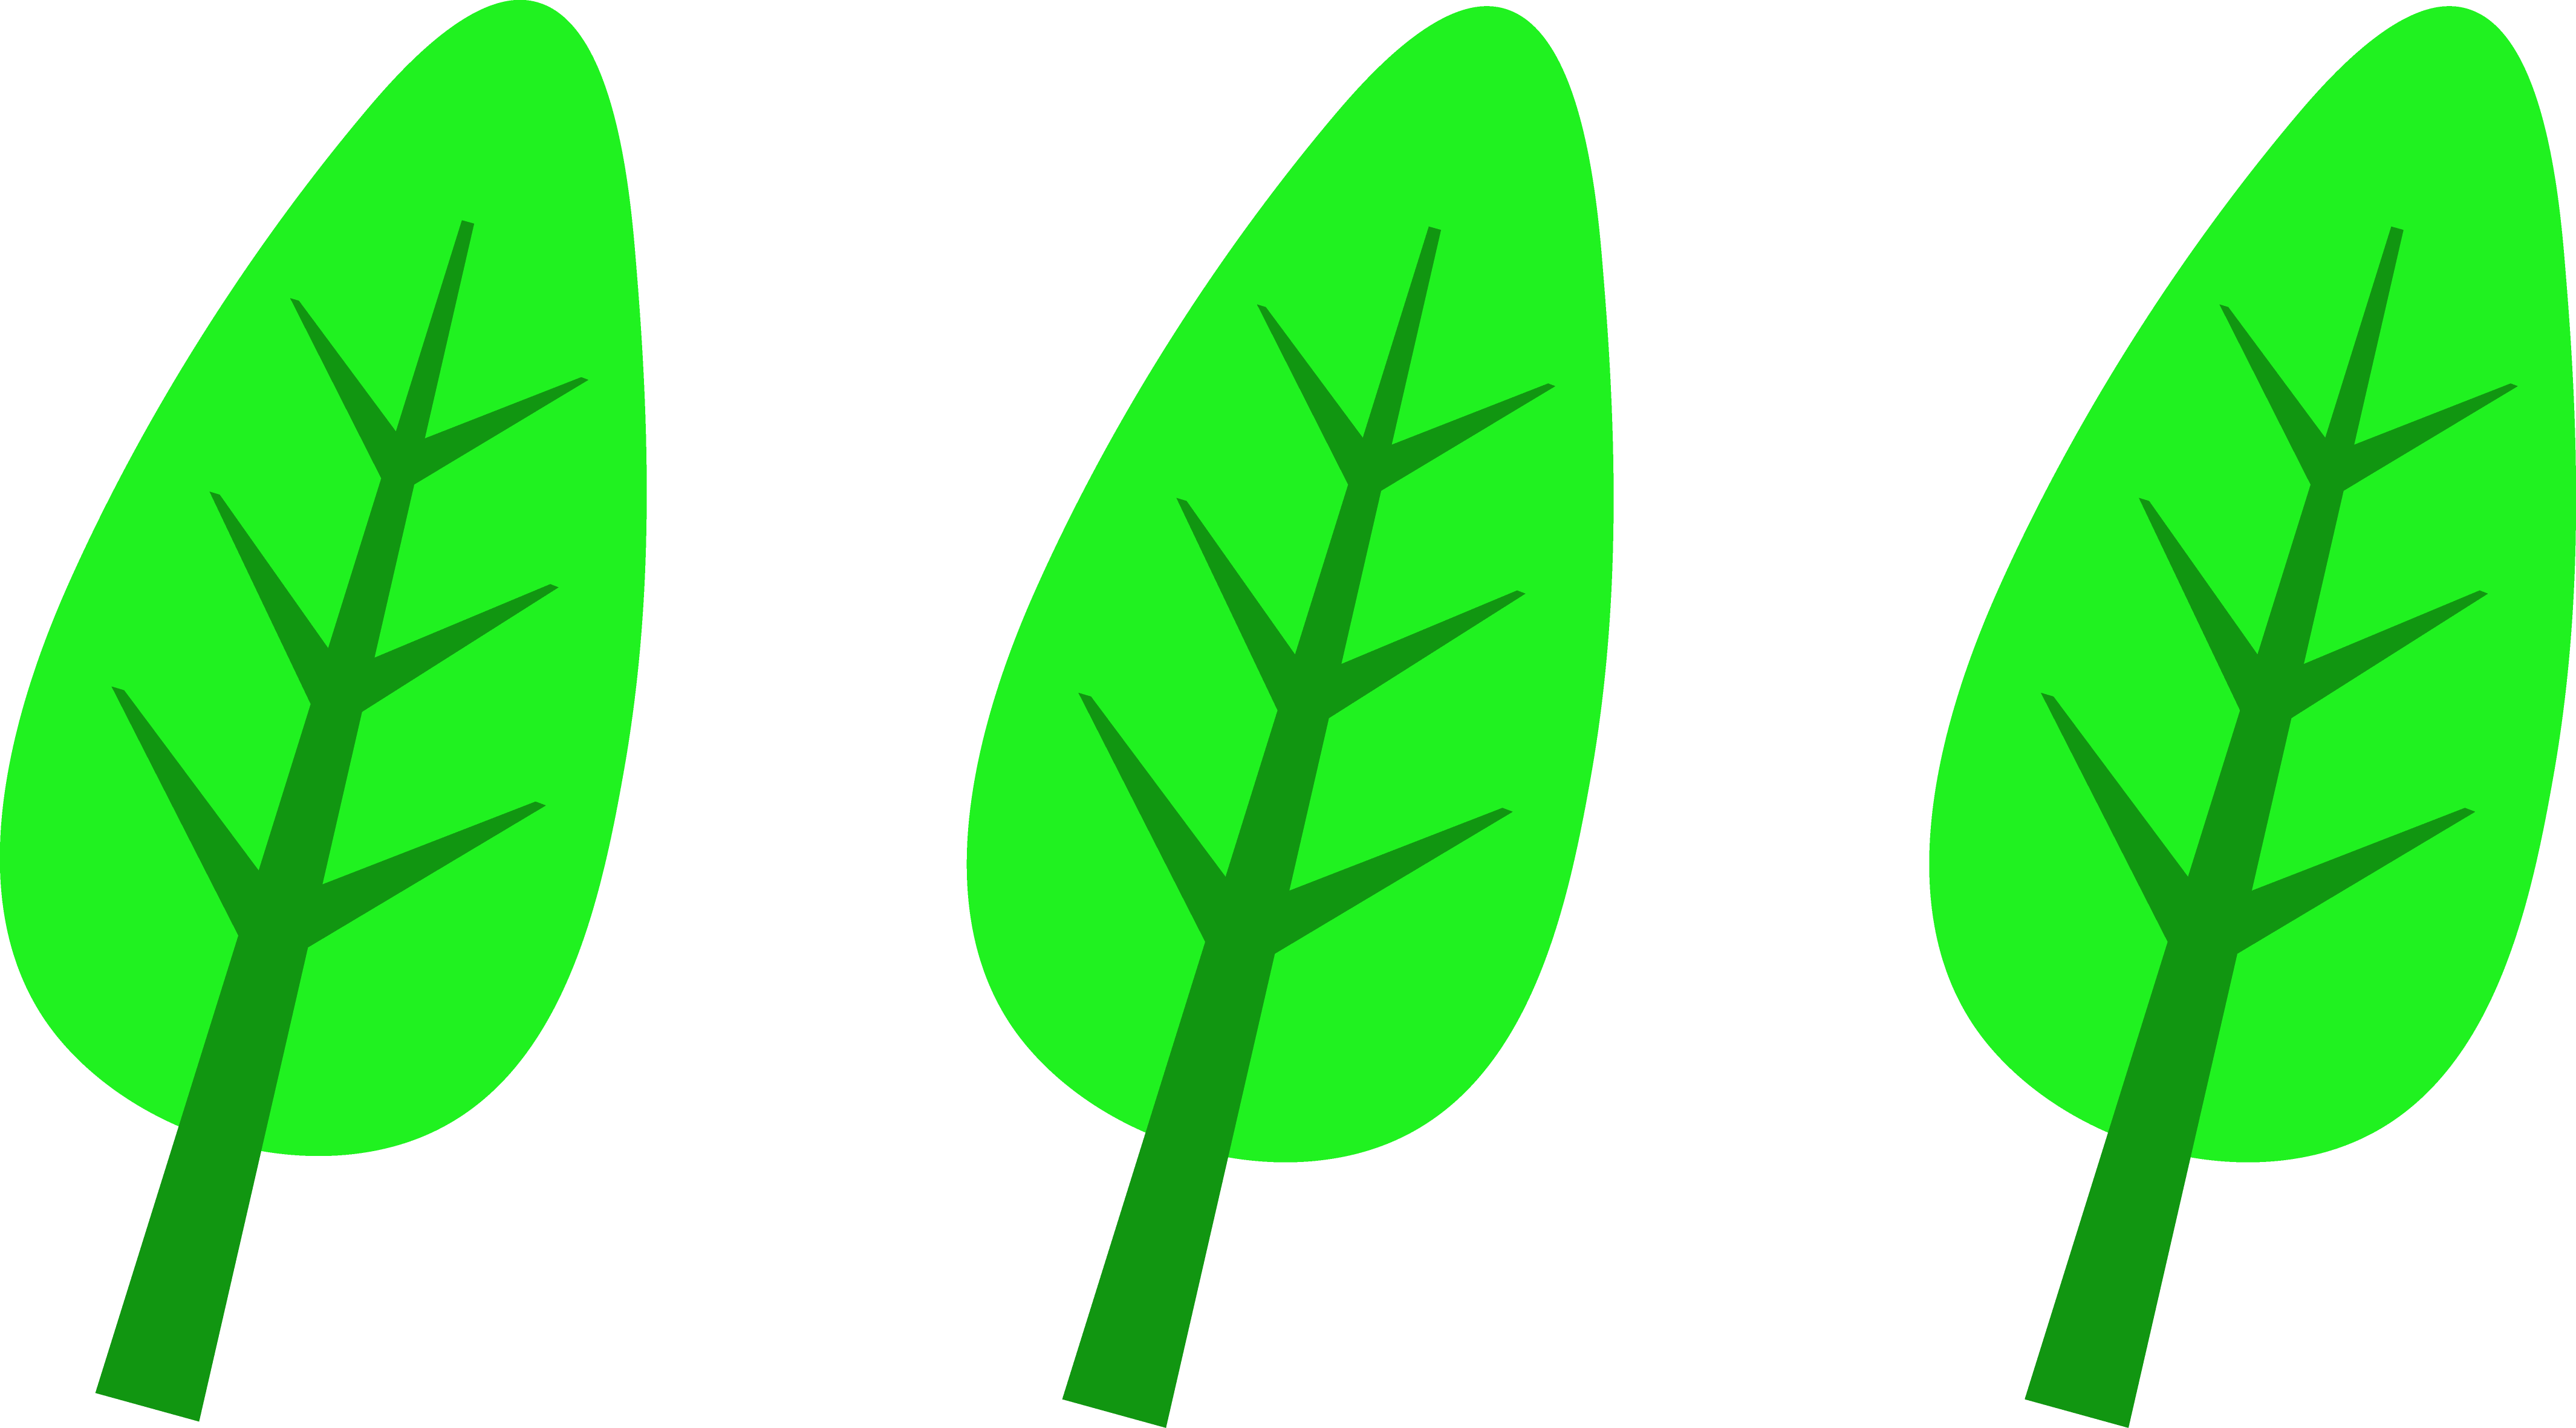 Tree leaves clipart clipart library Tree Leaves Clipart at GetDrawings.com | Free for personal use Tree ... clipart library